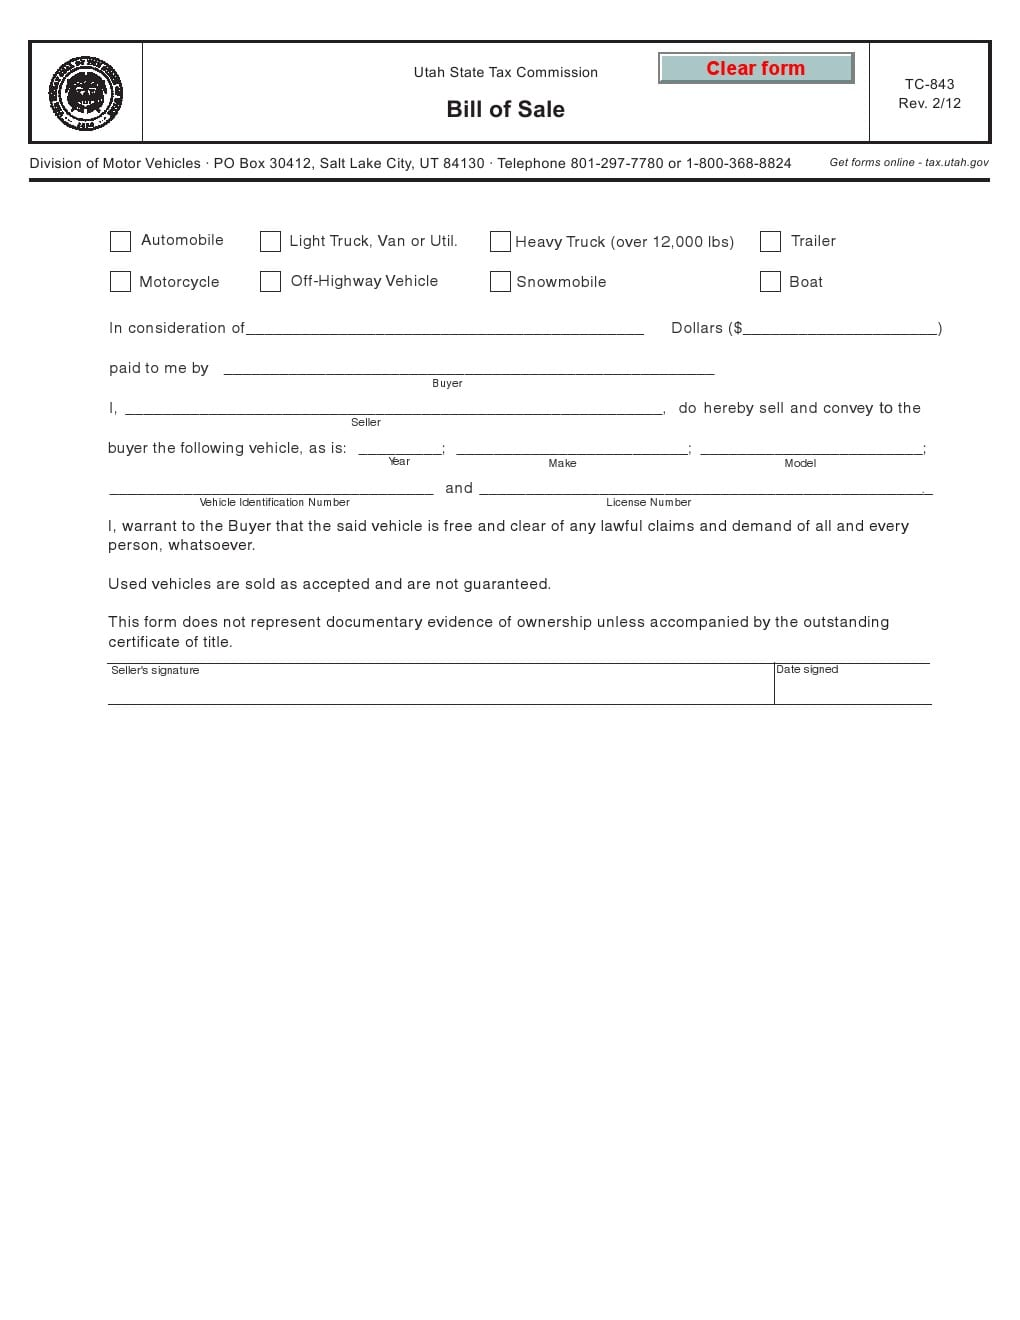 Utah Bill of Sale - Form TC-843